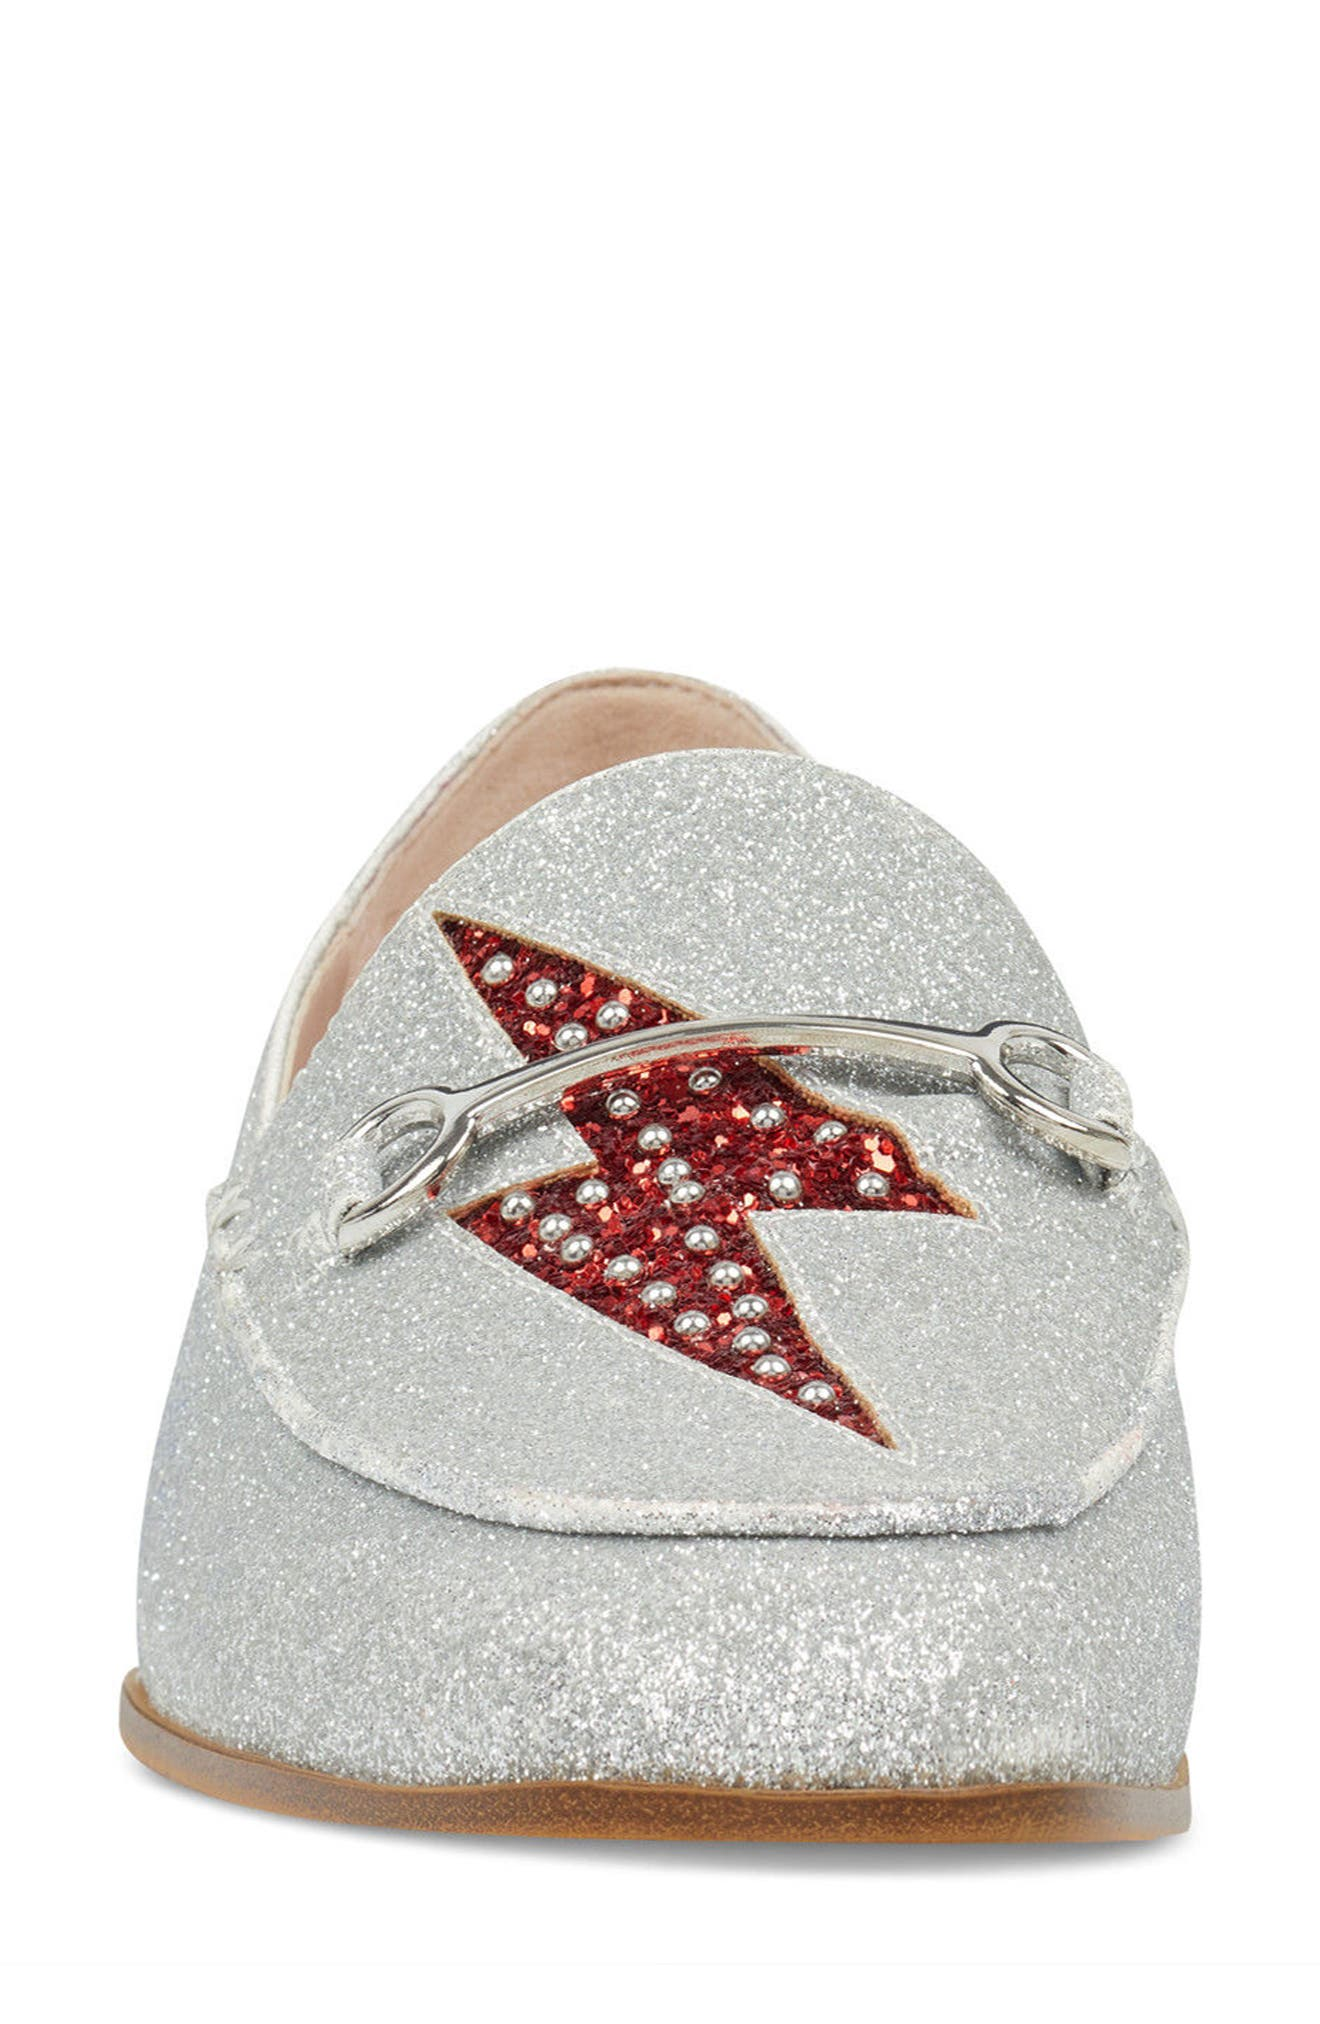 Wildgirls Embellished Loafer,                             Alternate thumbnail 4, color,                             SILVER/ RED FABRIC